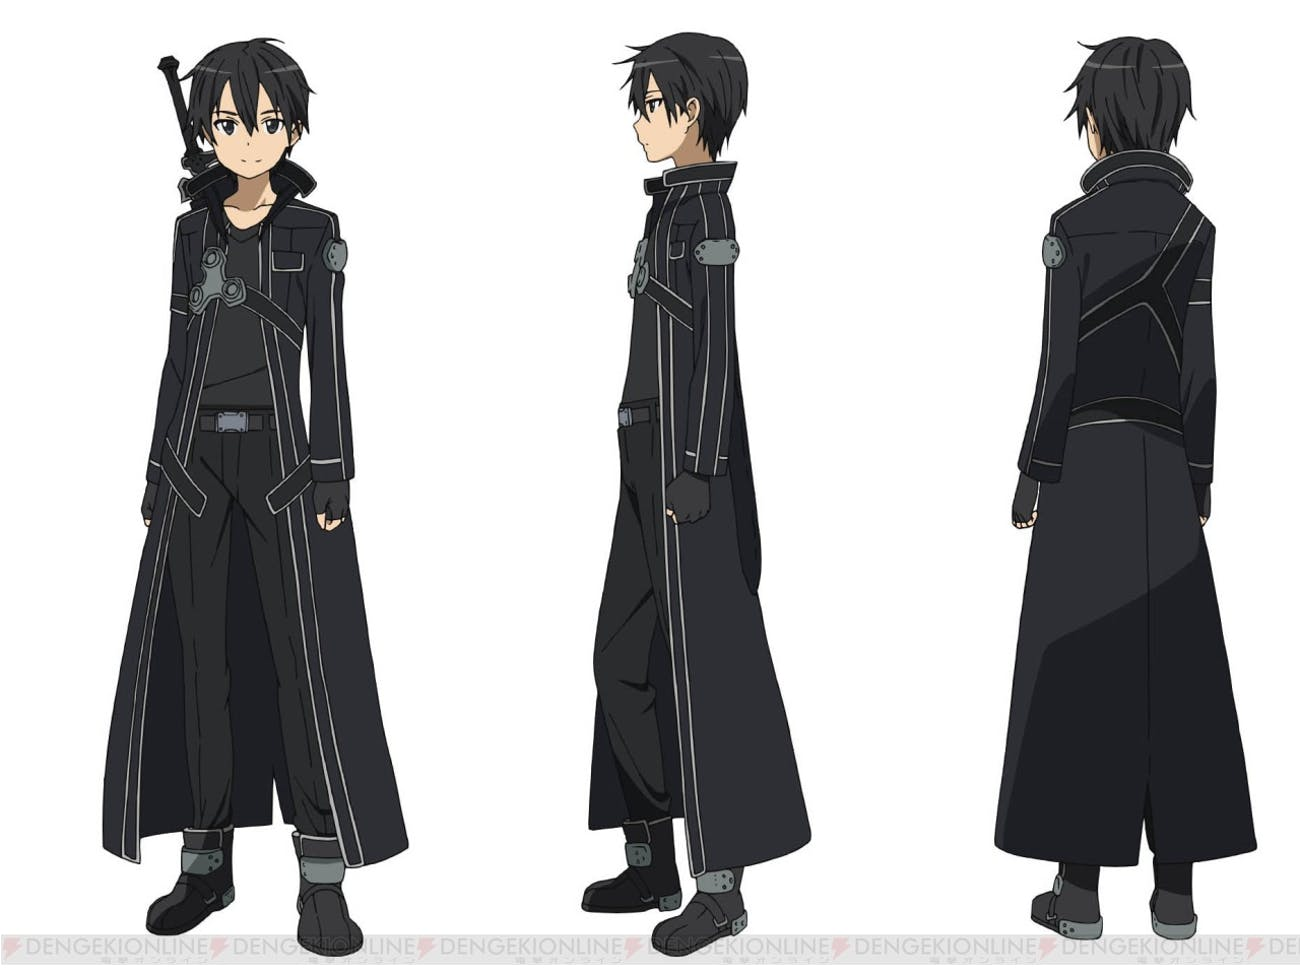 Kirito is a master swordsman and loner whose good intentions and courage make him an admirable hero.